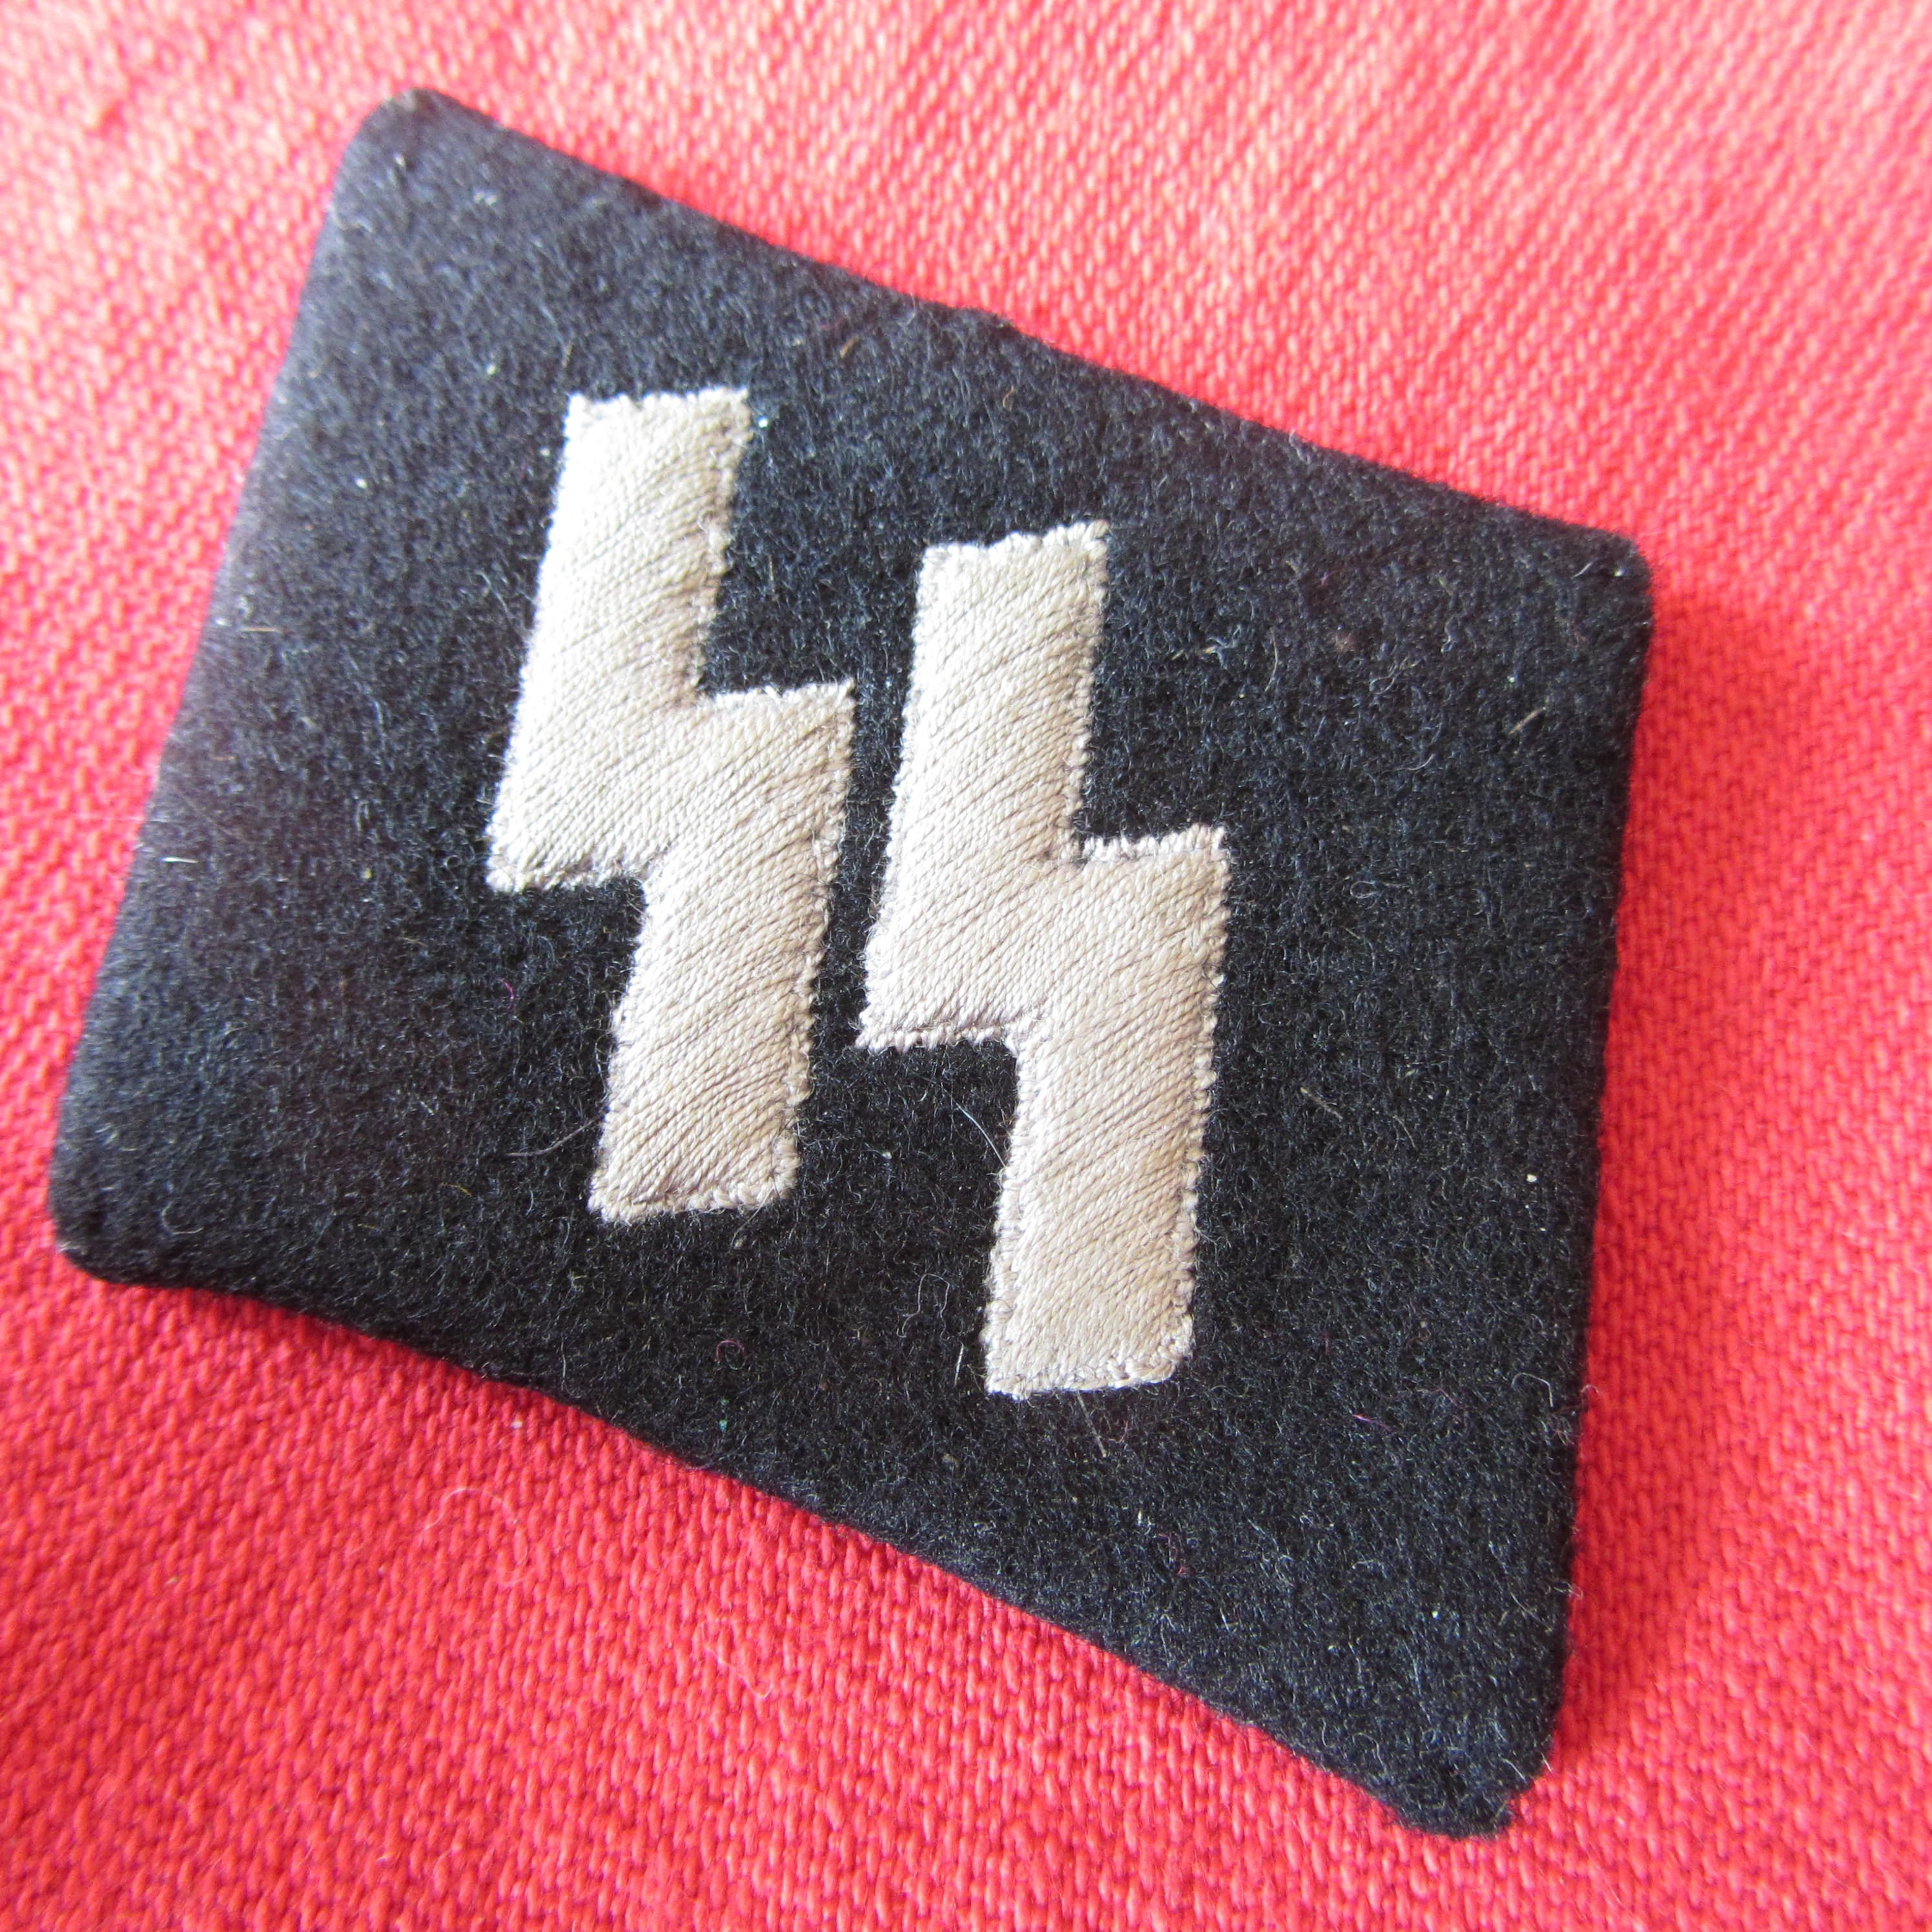 WAFFEN SS O.R/N.C.O. RUNIC COLLAR PATCH Embroidered runes -RZM/SS/M212175 paper Label 5mm * 40mm Ref 14-59a more details @ www.ww2militaria.net